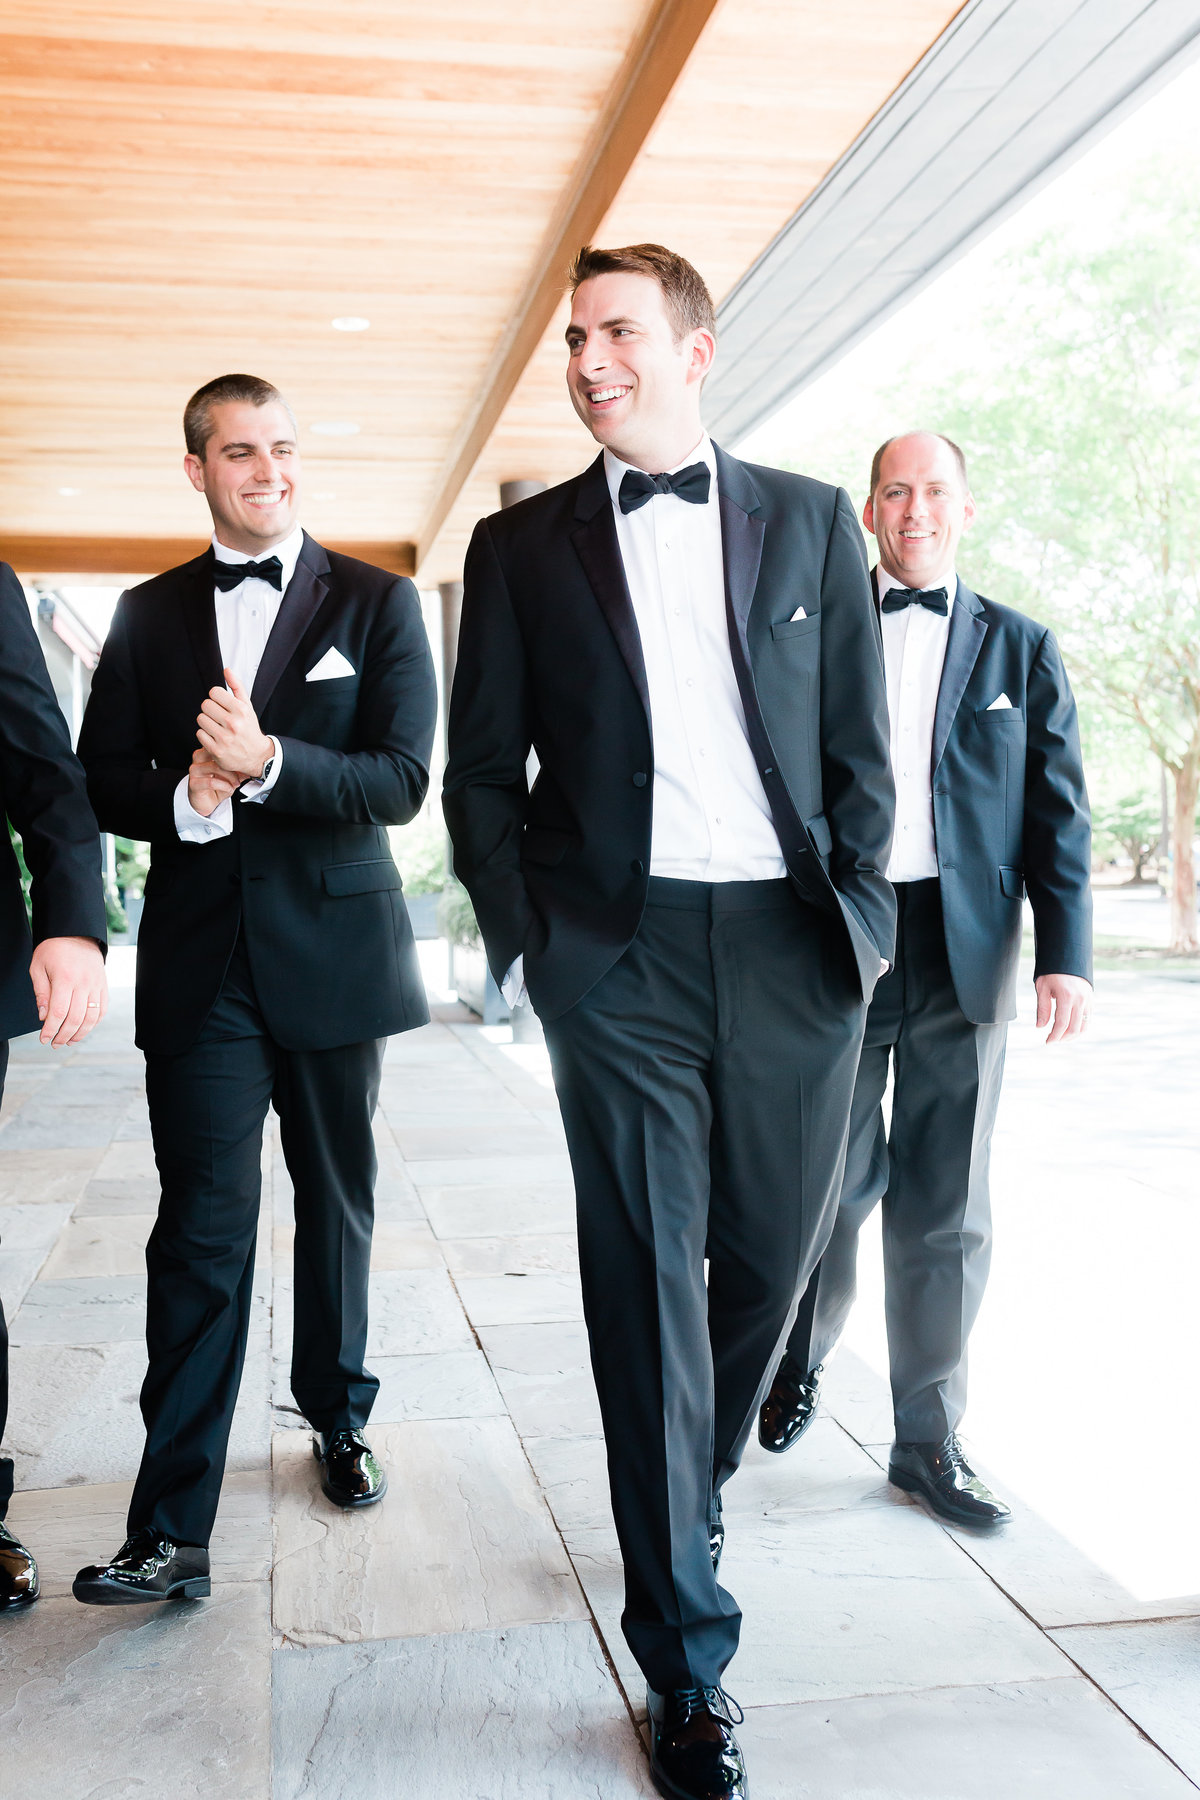 Charleston Weddings- Nancy Lempesis Photography - Wedding Phtography (55)